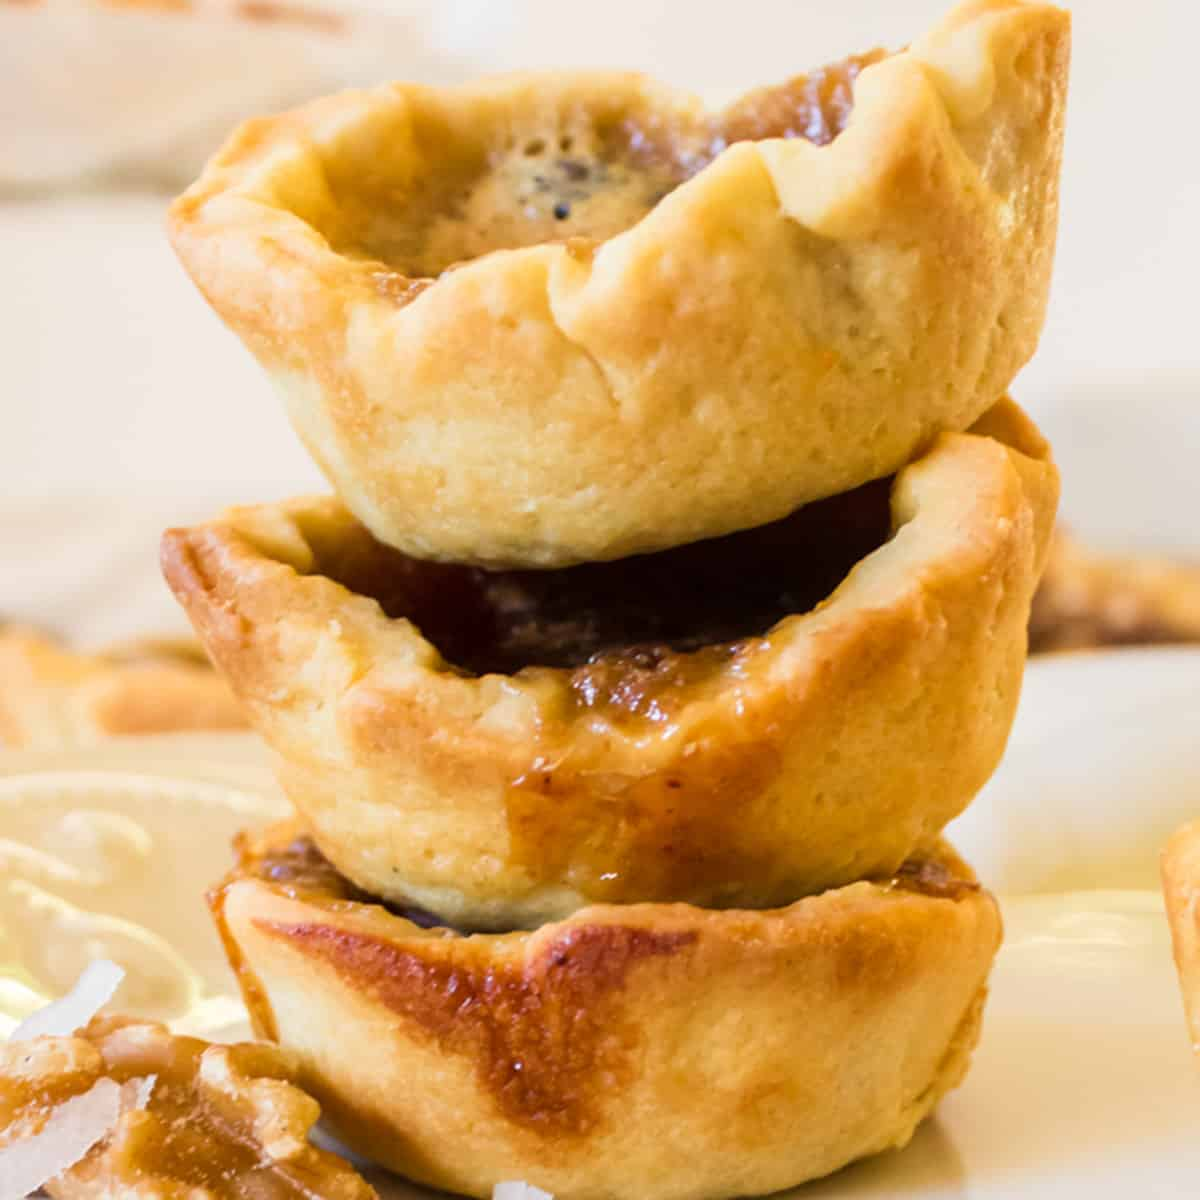 A stack of 3 butter tarts.